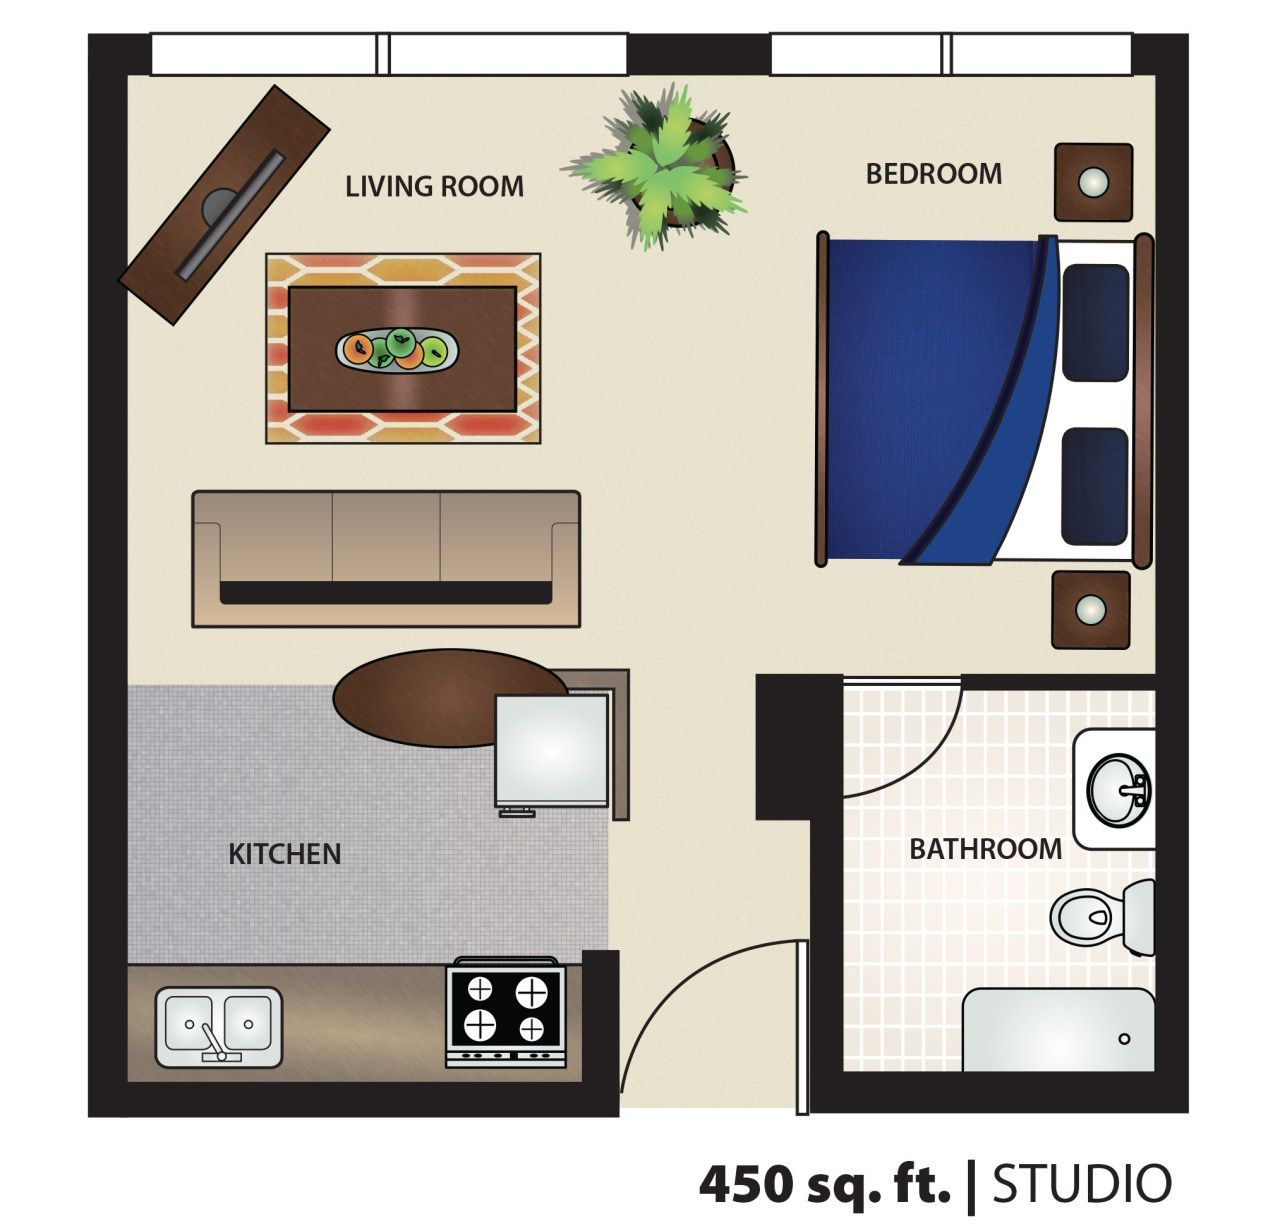 450 Square Foot Apartment Floor Plan Efficiency Studio 400 Of Home Design Map For 450 Sq Studio Apartment Layout Cottage Style House Plans Apartment Floor Plan